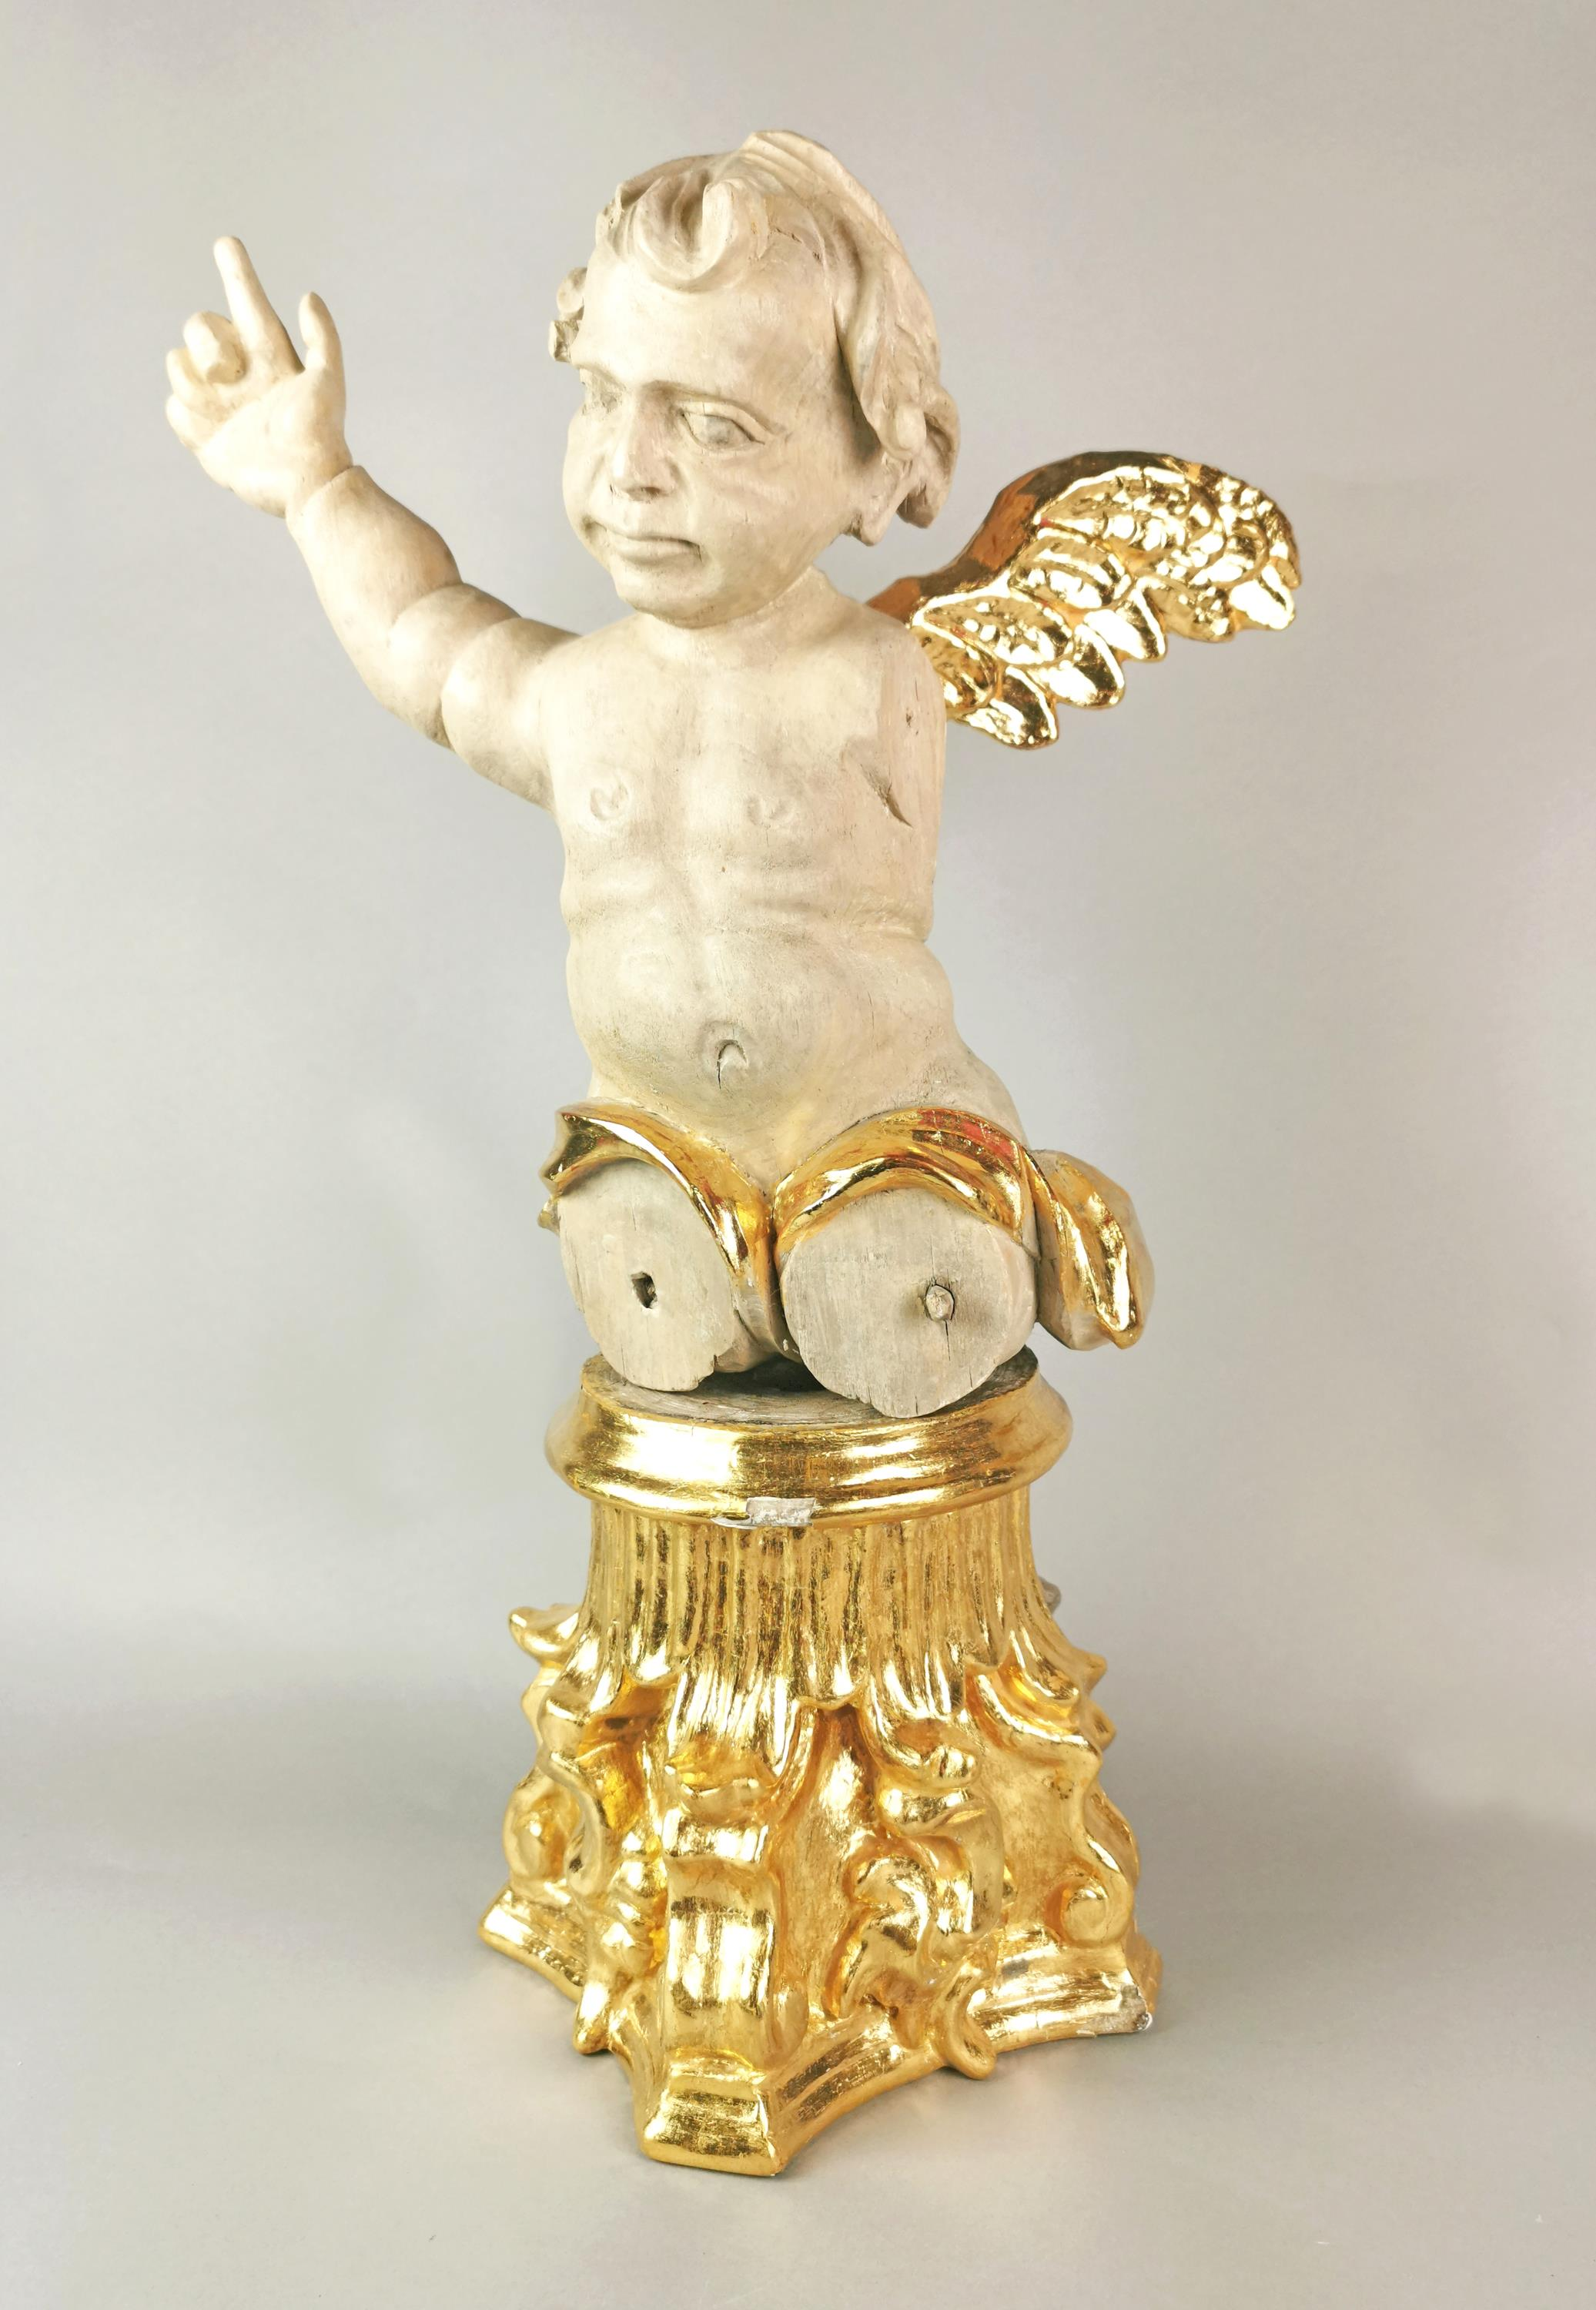 Uskrzydlone putto